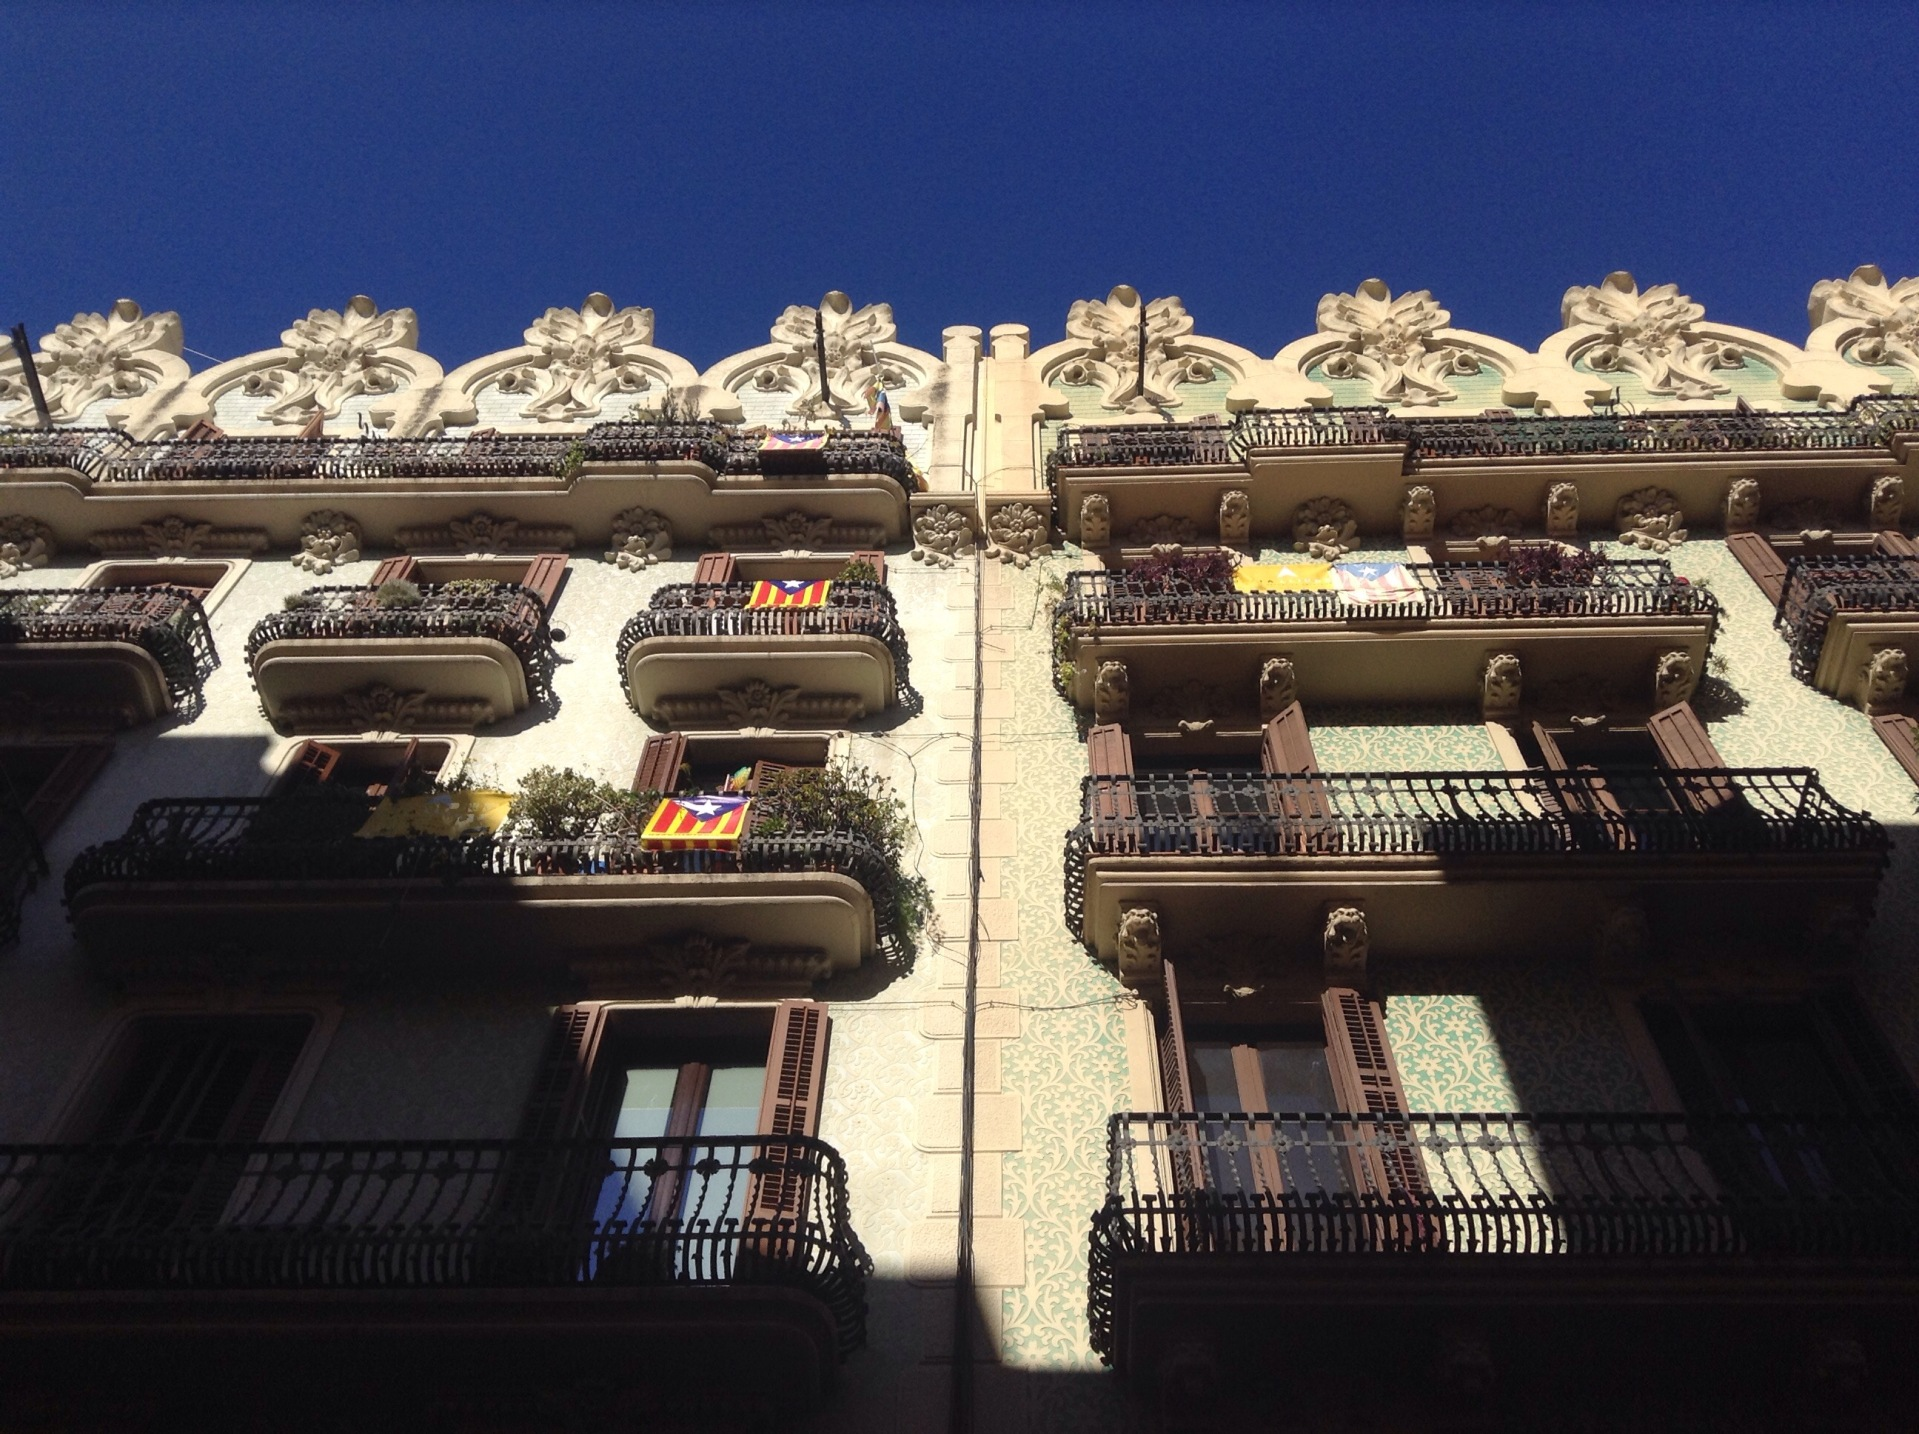 Finding accommodation in Spain